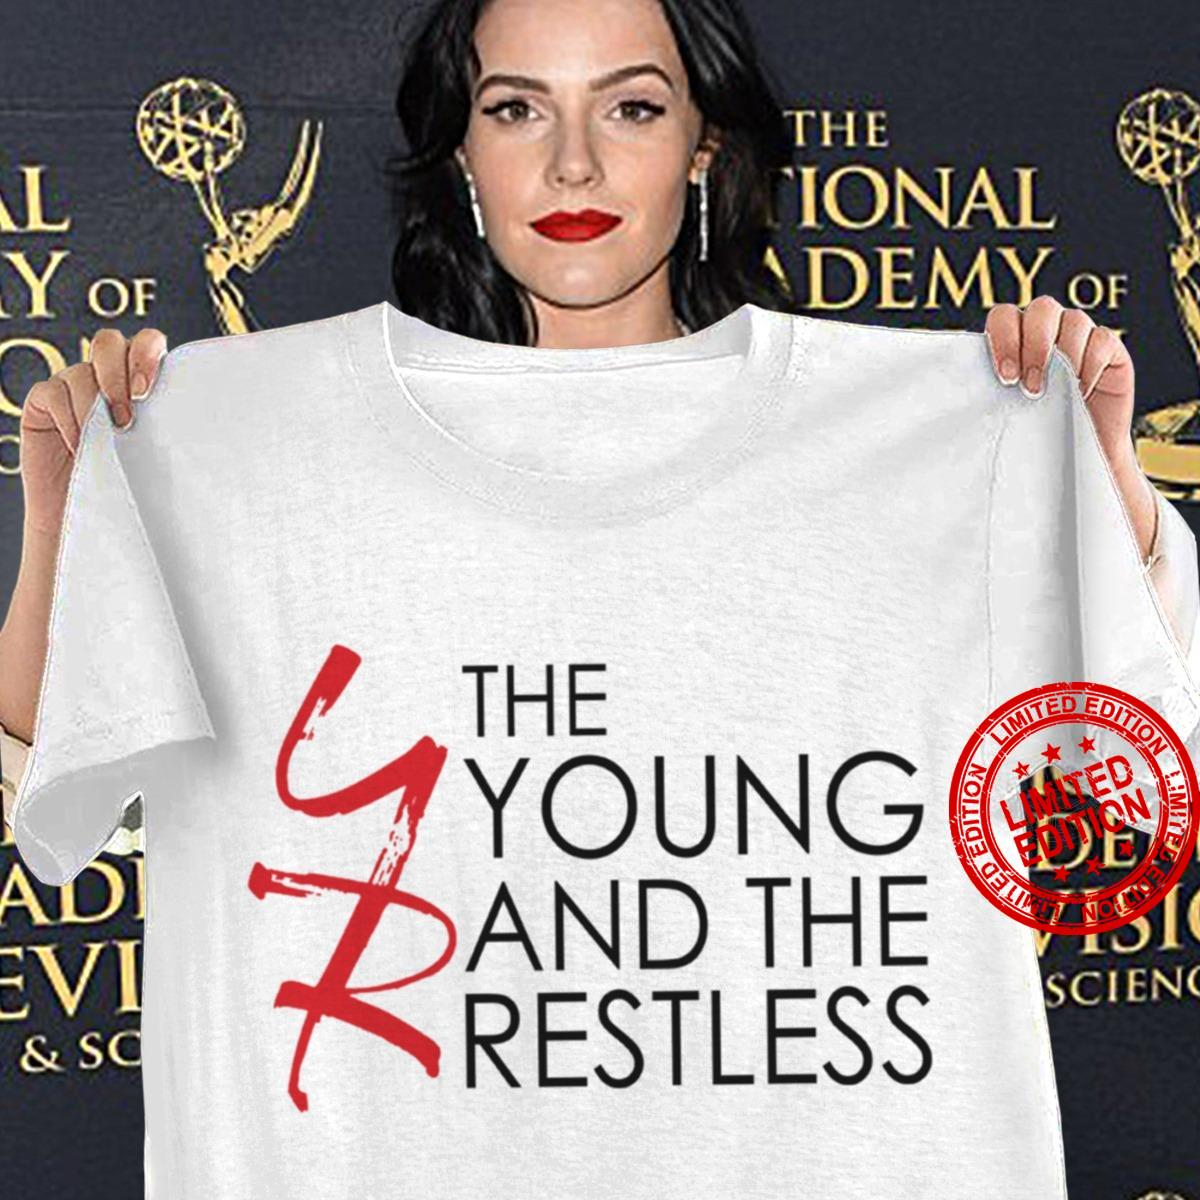 The Young And The Restless Shirt